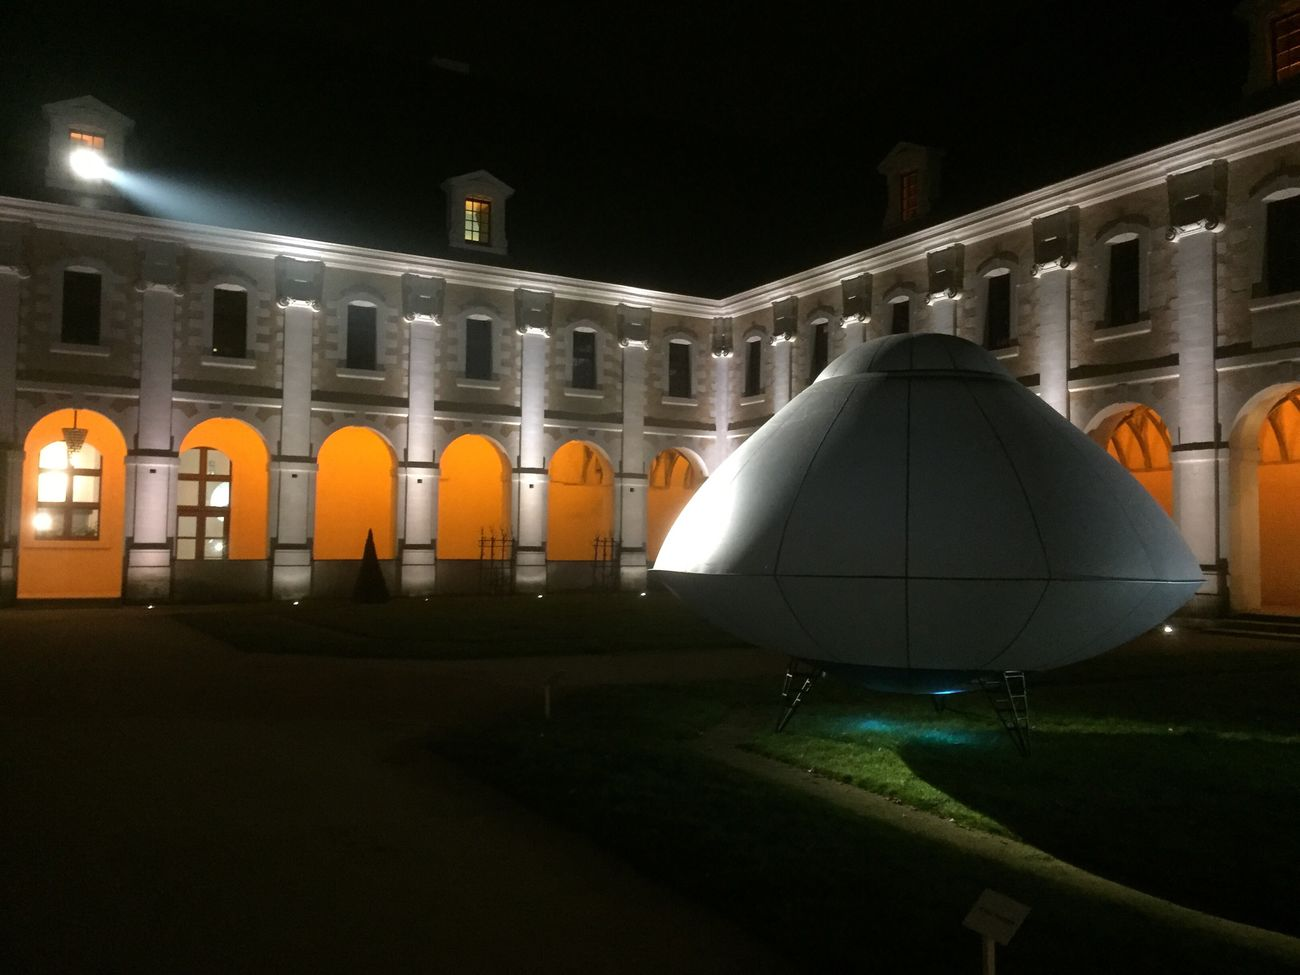 Built Structure Architecture Illuminated Night Building Exterior No People Sculpture Ovni UFO Joel Hubaut Patrimoine France Science Fiction Night Photography Light And Shadow Lights